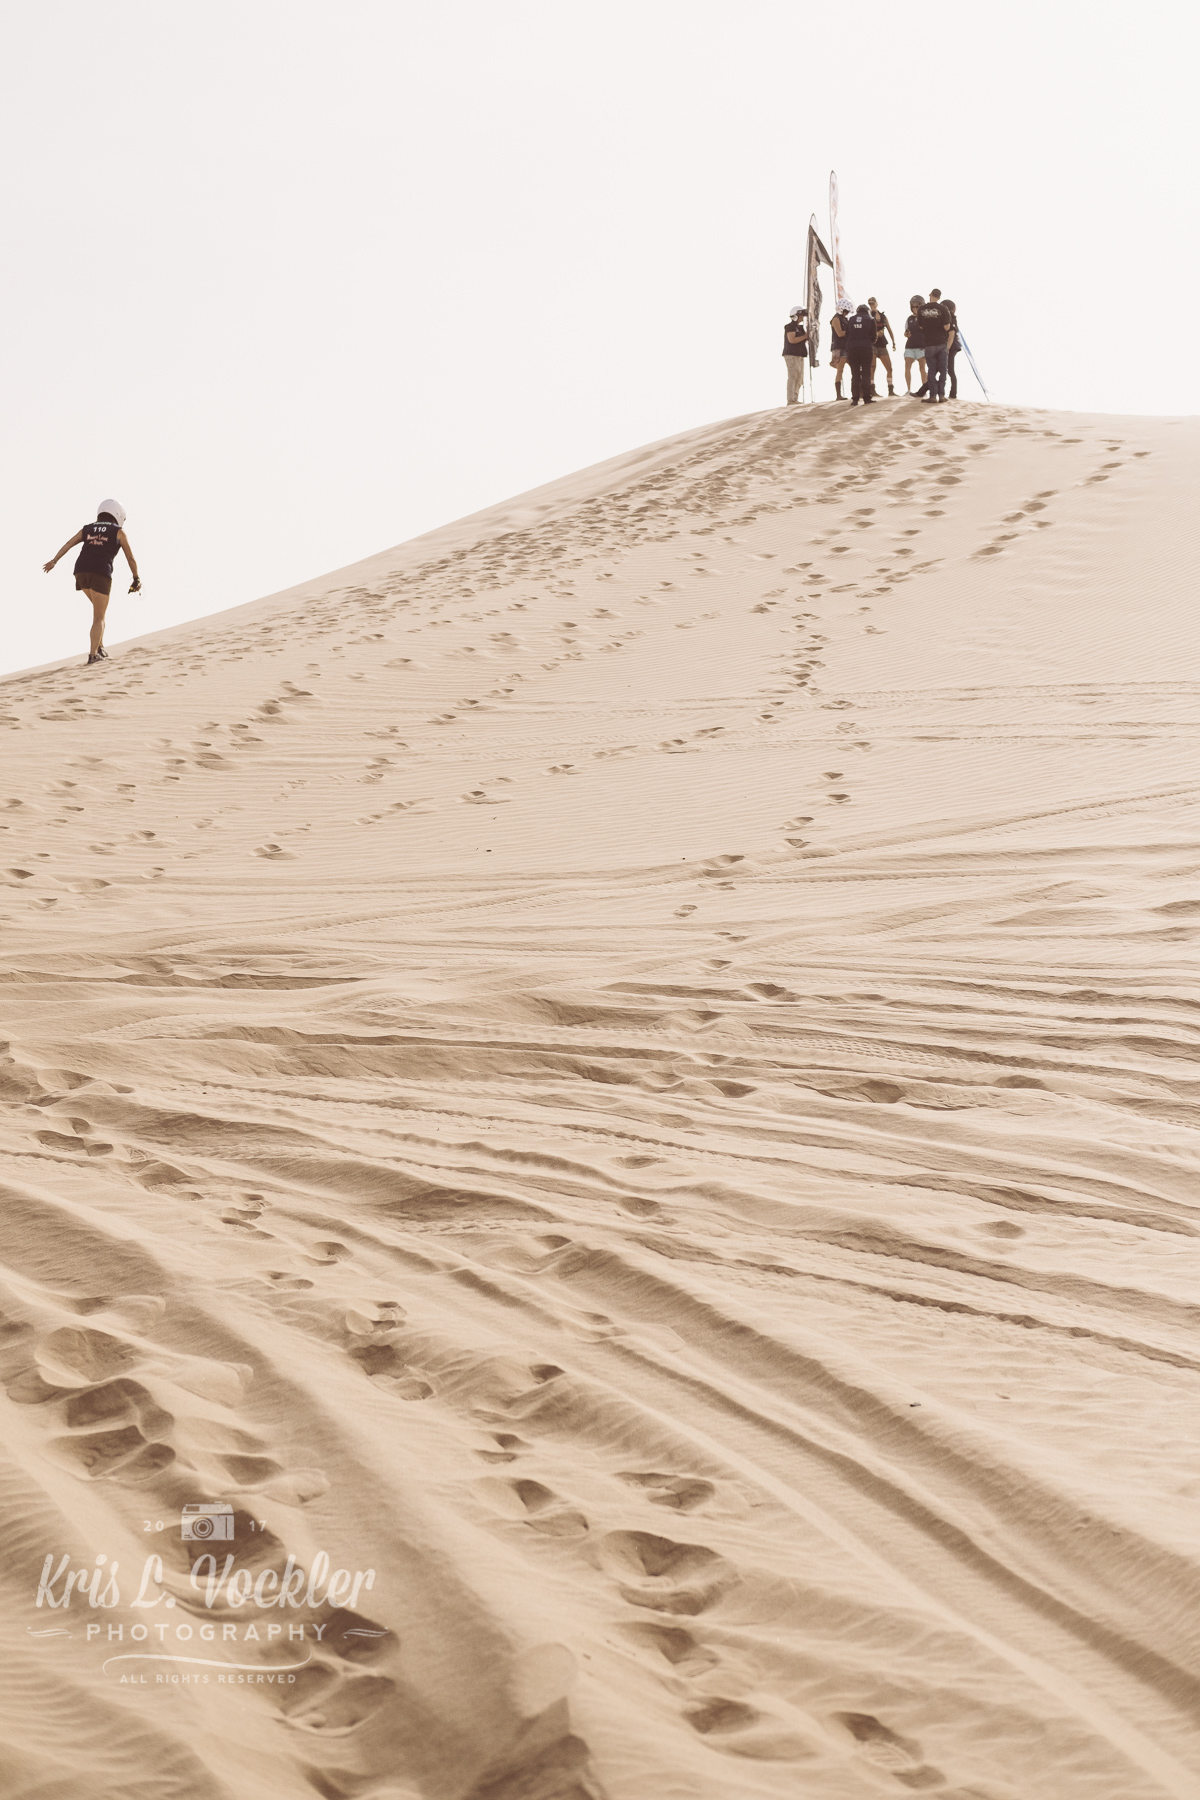 Finding Rebelle Rally checkpoints in Glamis Sand Dunes